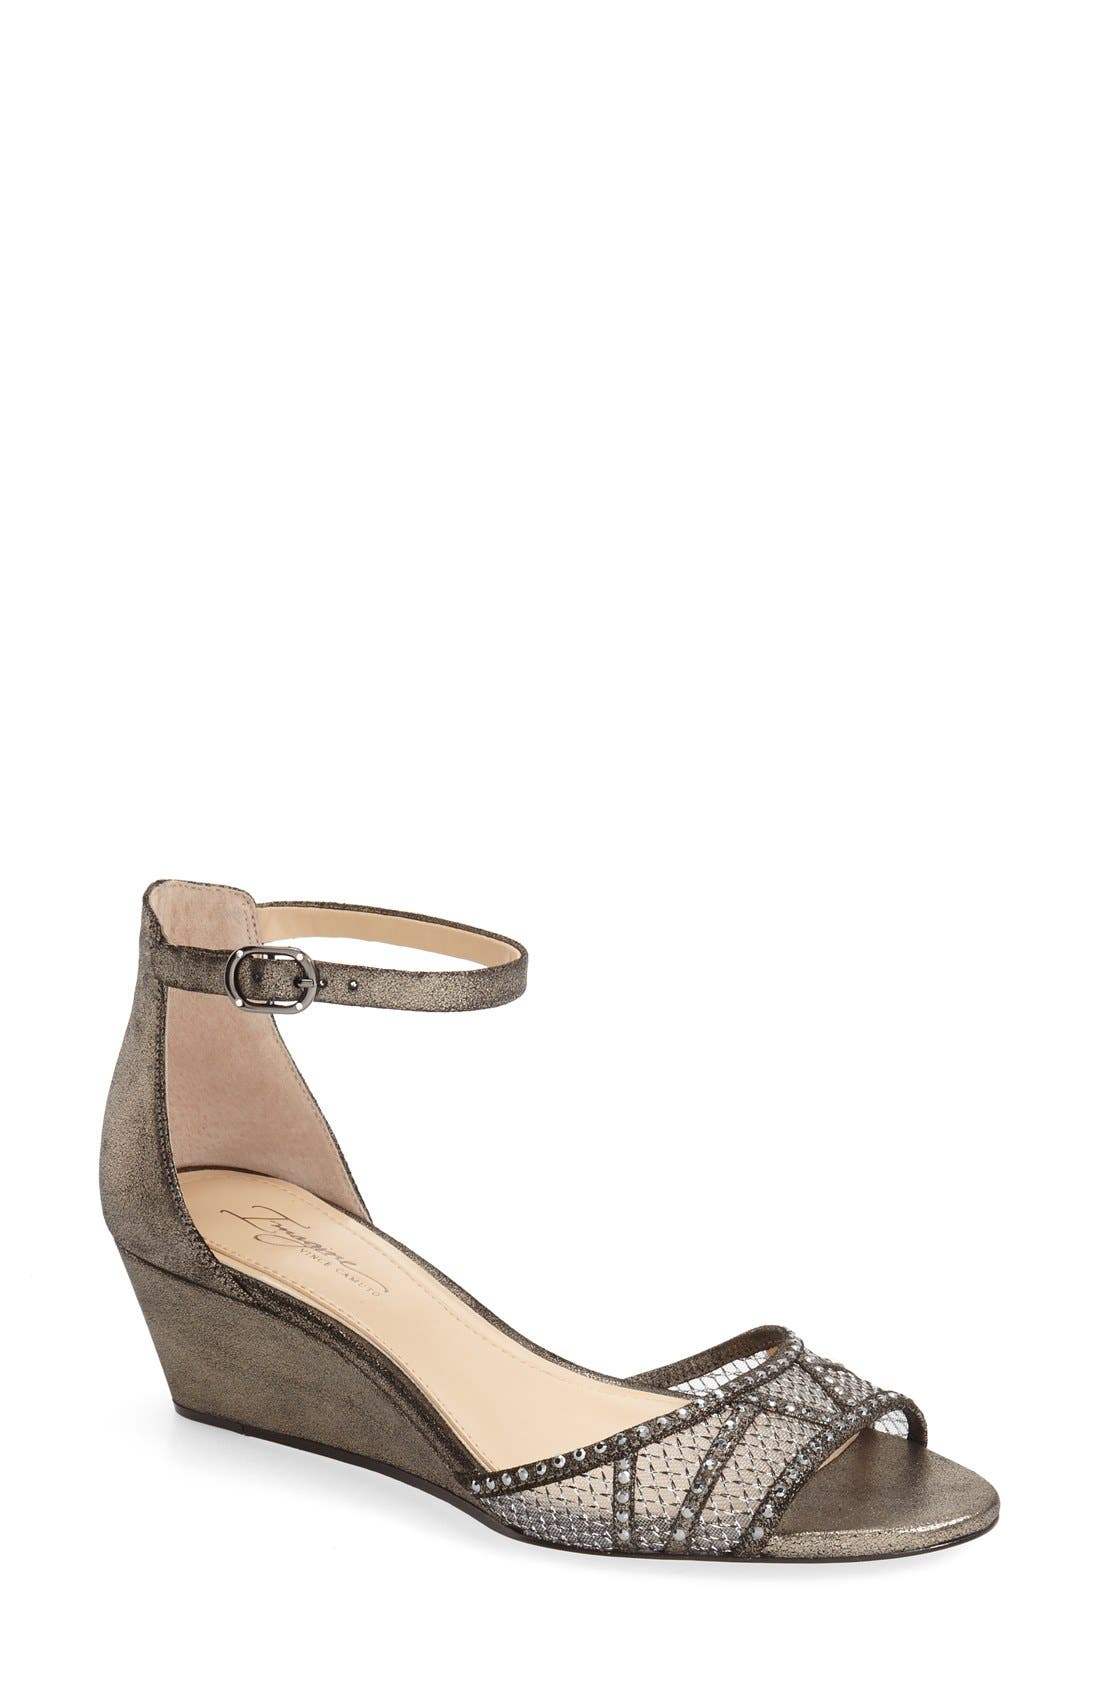 'Joan' Studded Wedge Sandal,                             Main thumbnail 1, color,                             Anthracite Suede